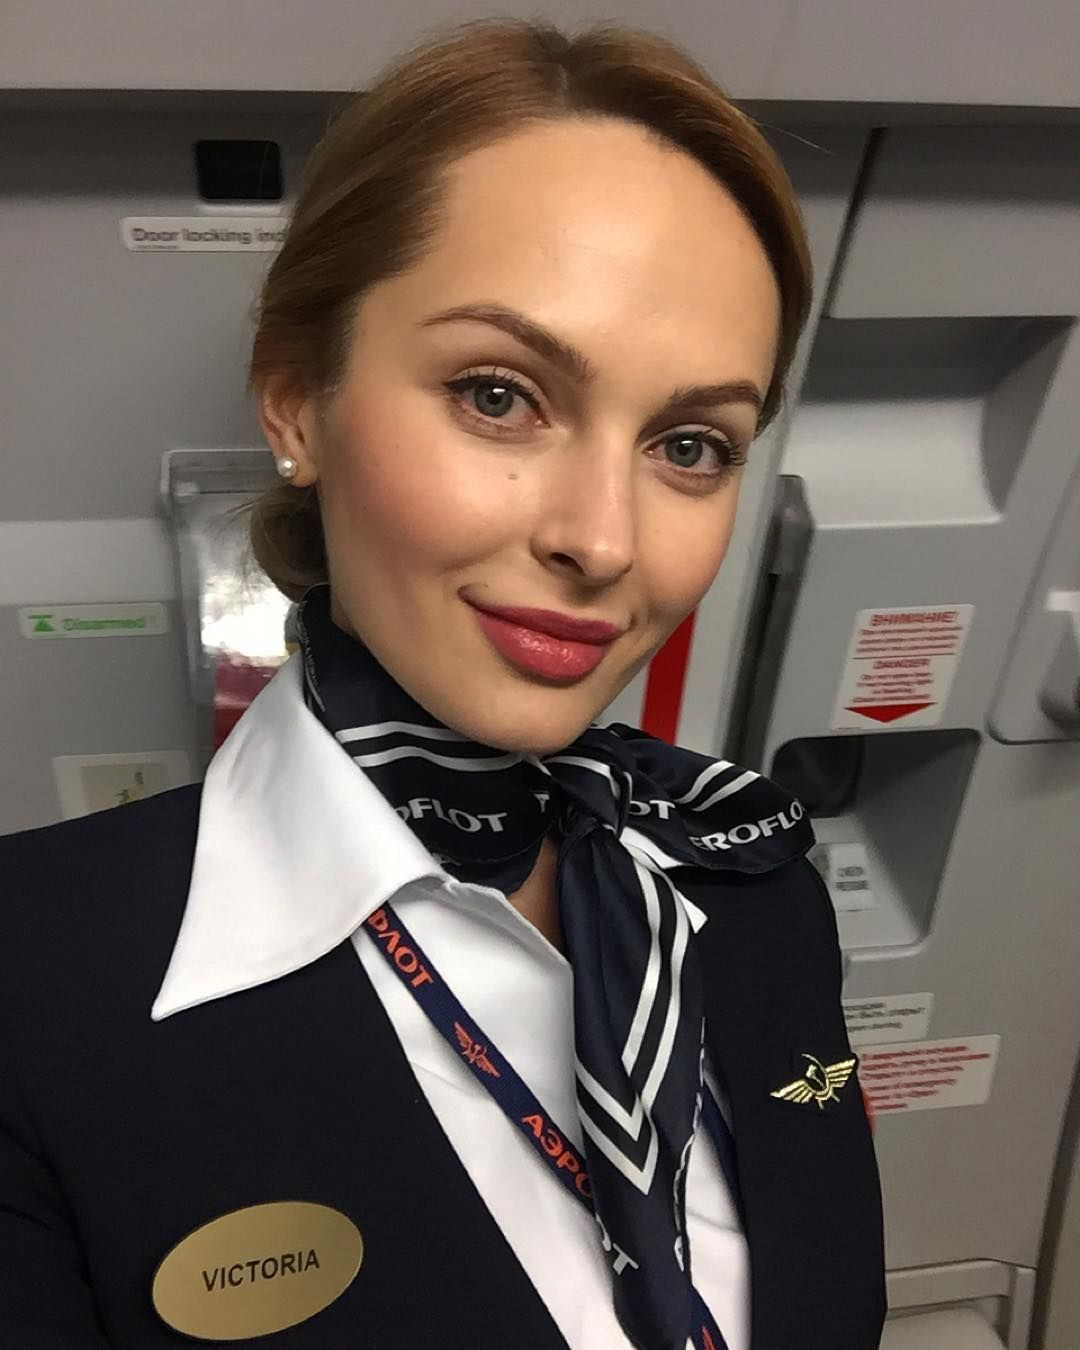 Aeroflot Flight Attendant Stewardess - Neck Scarf Air Hostess